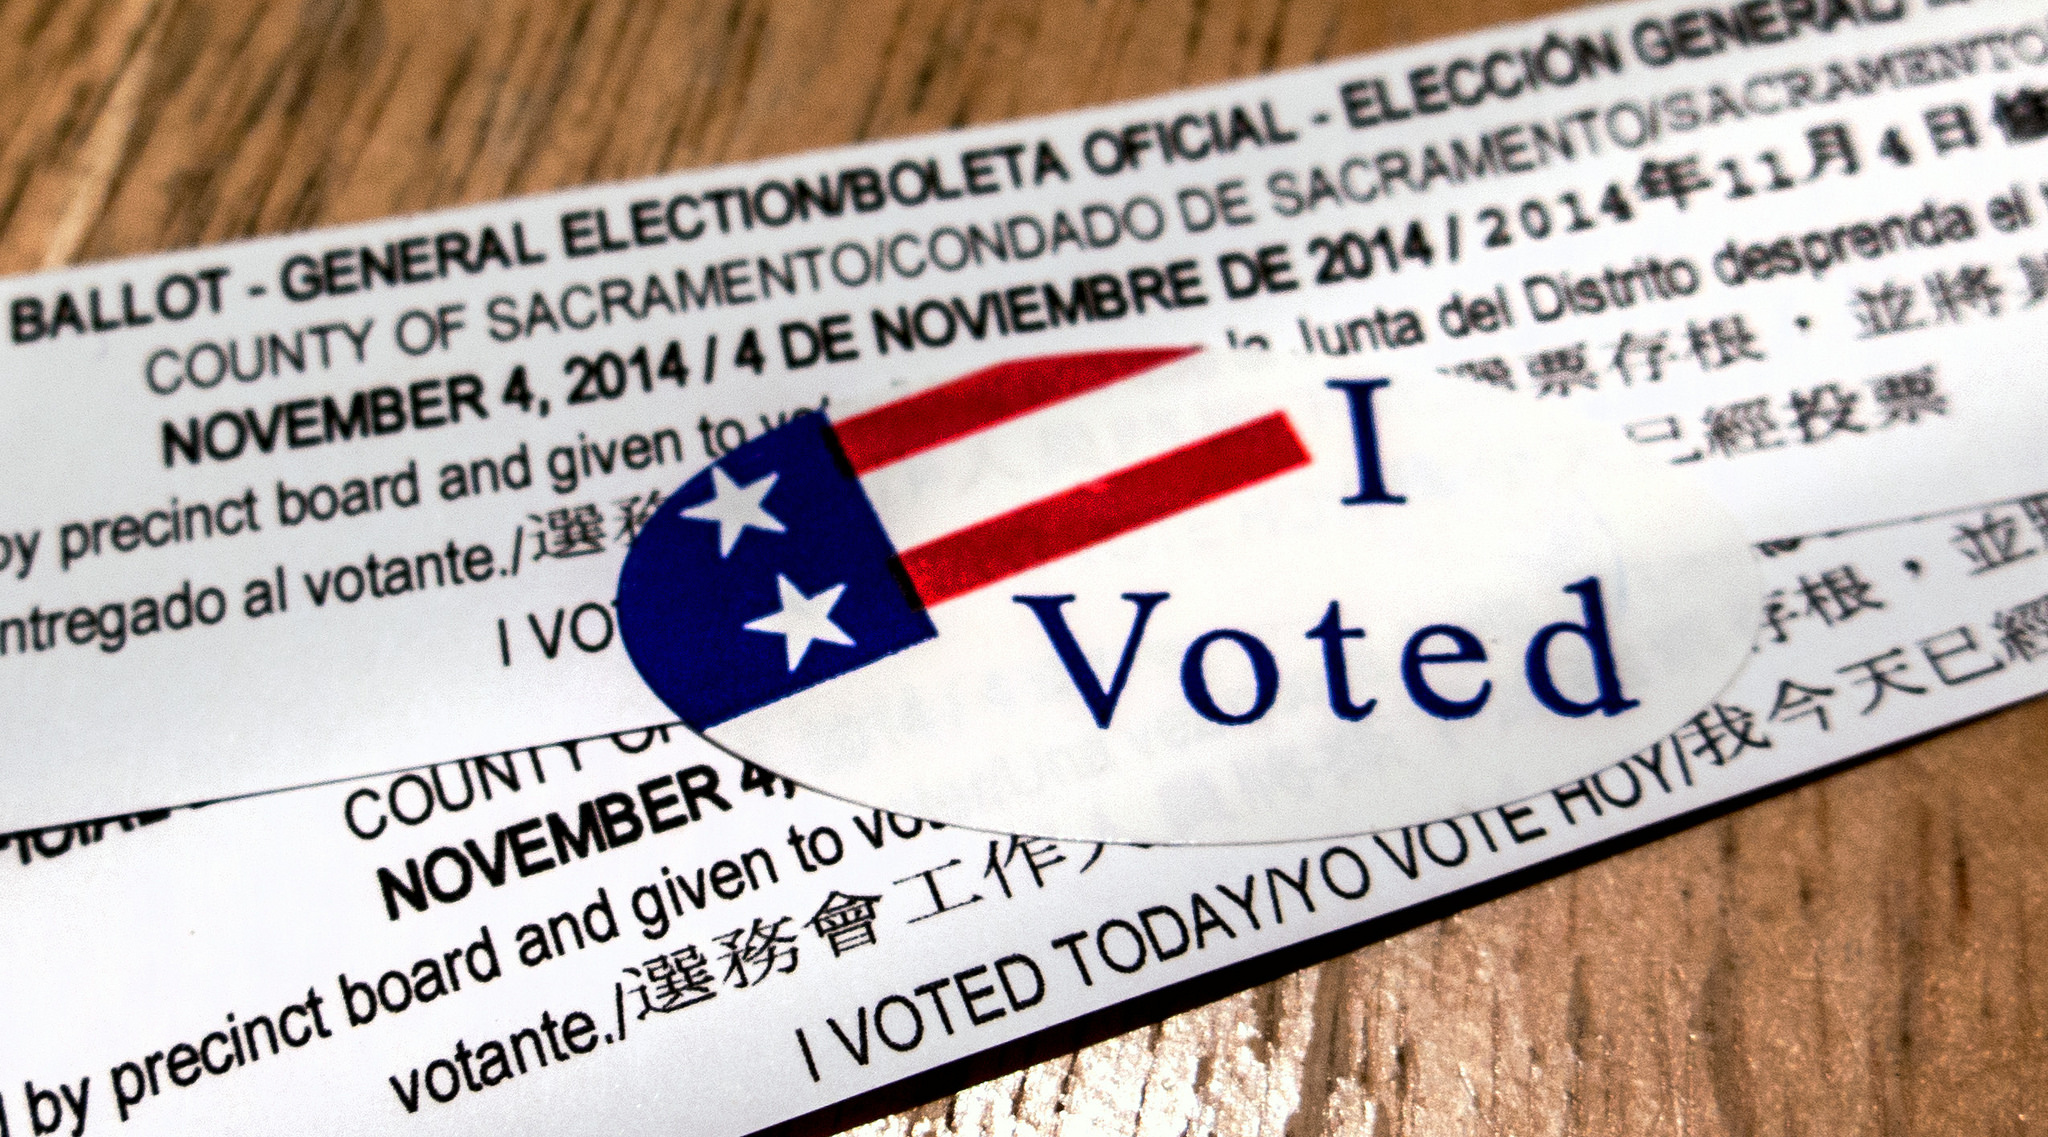 I Voted Today by Robert Couse-Baker.